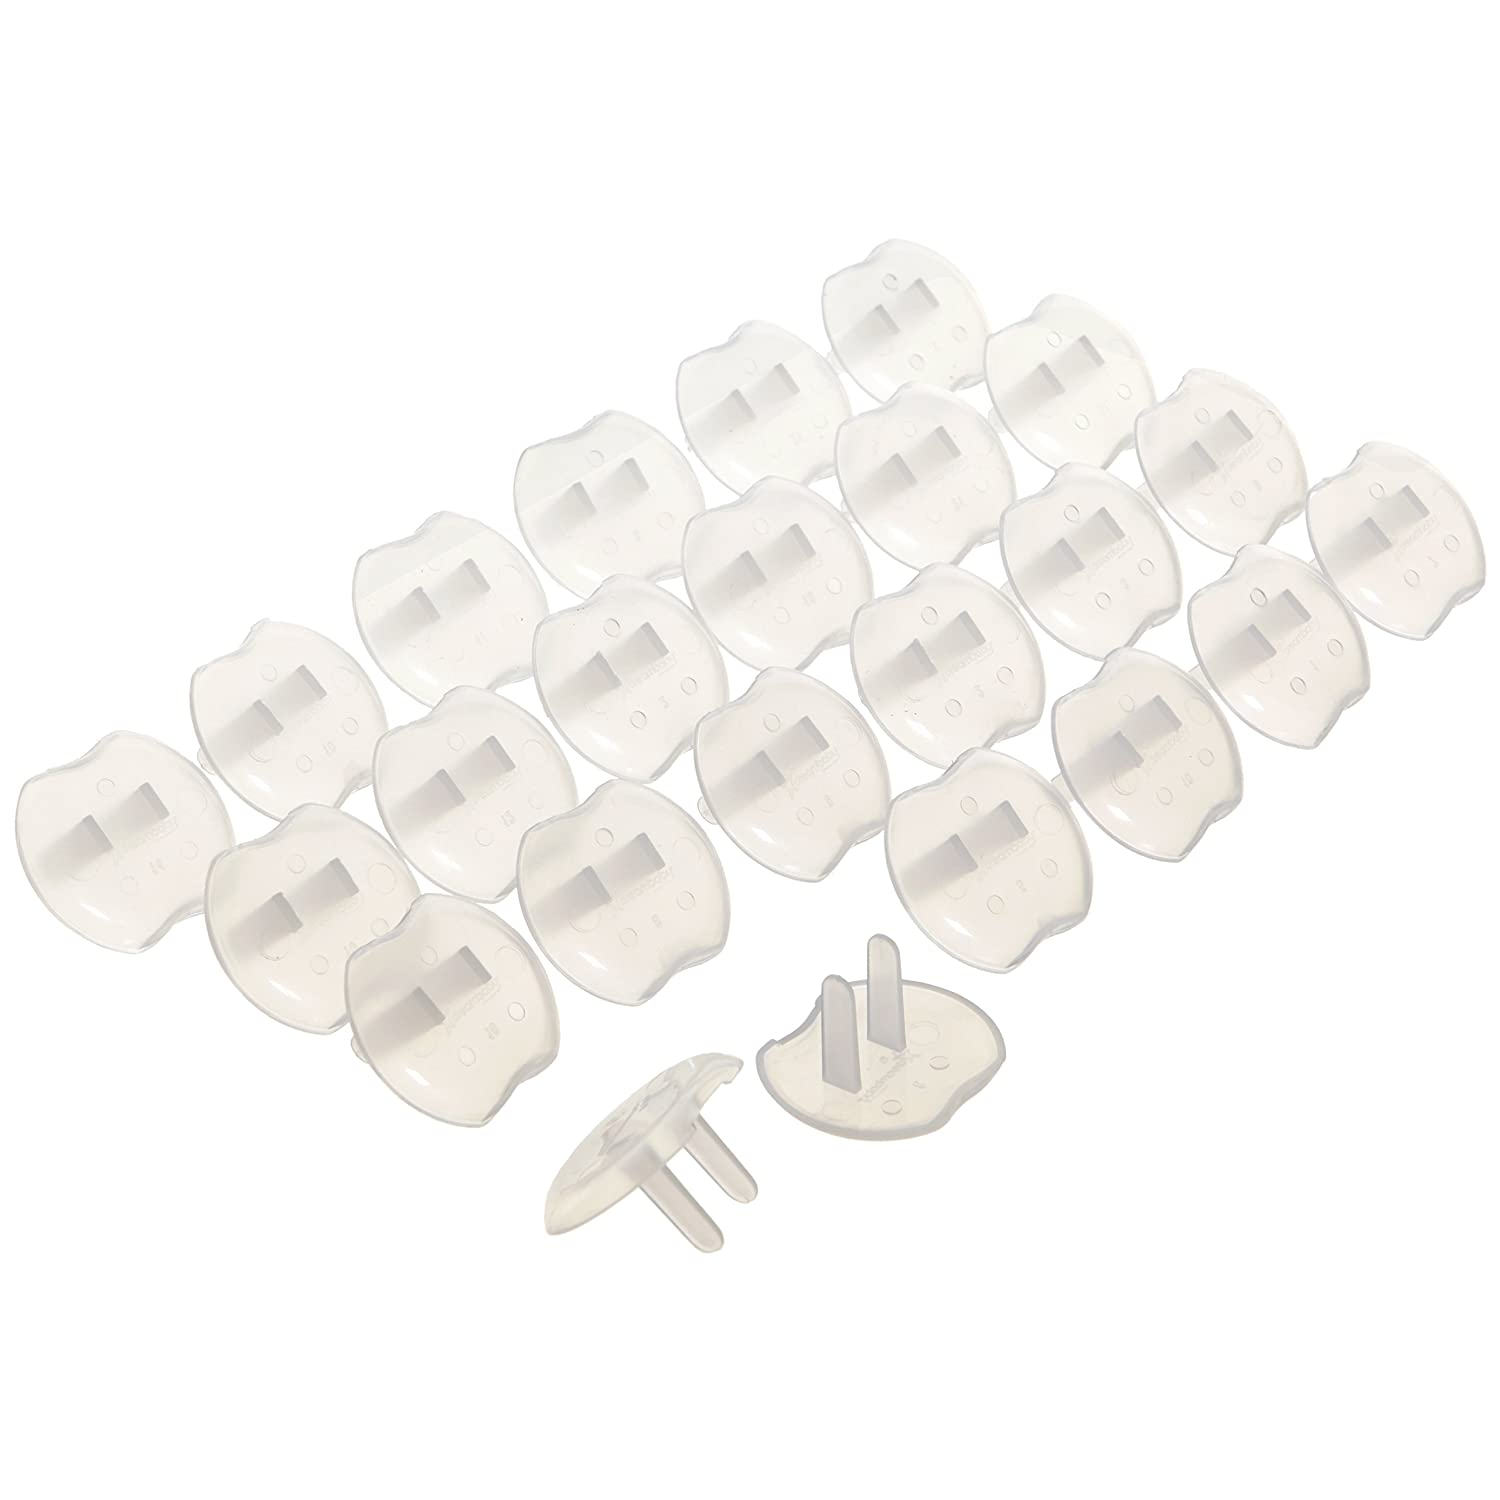 Dreambaby Outlet Plugs, 24-Pack, White L1821